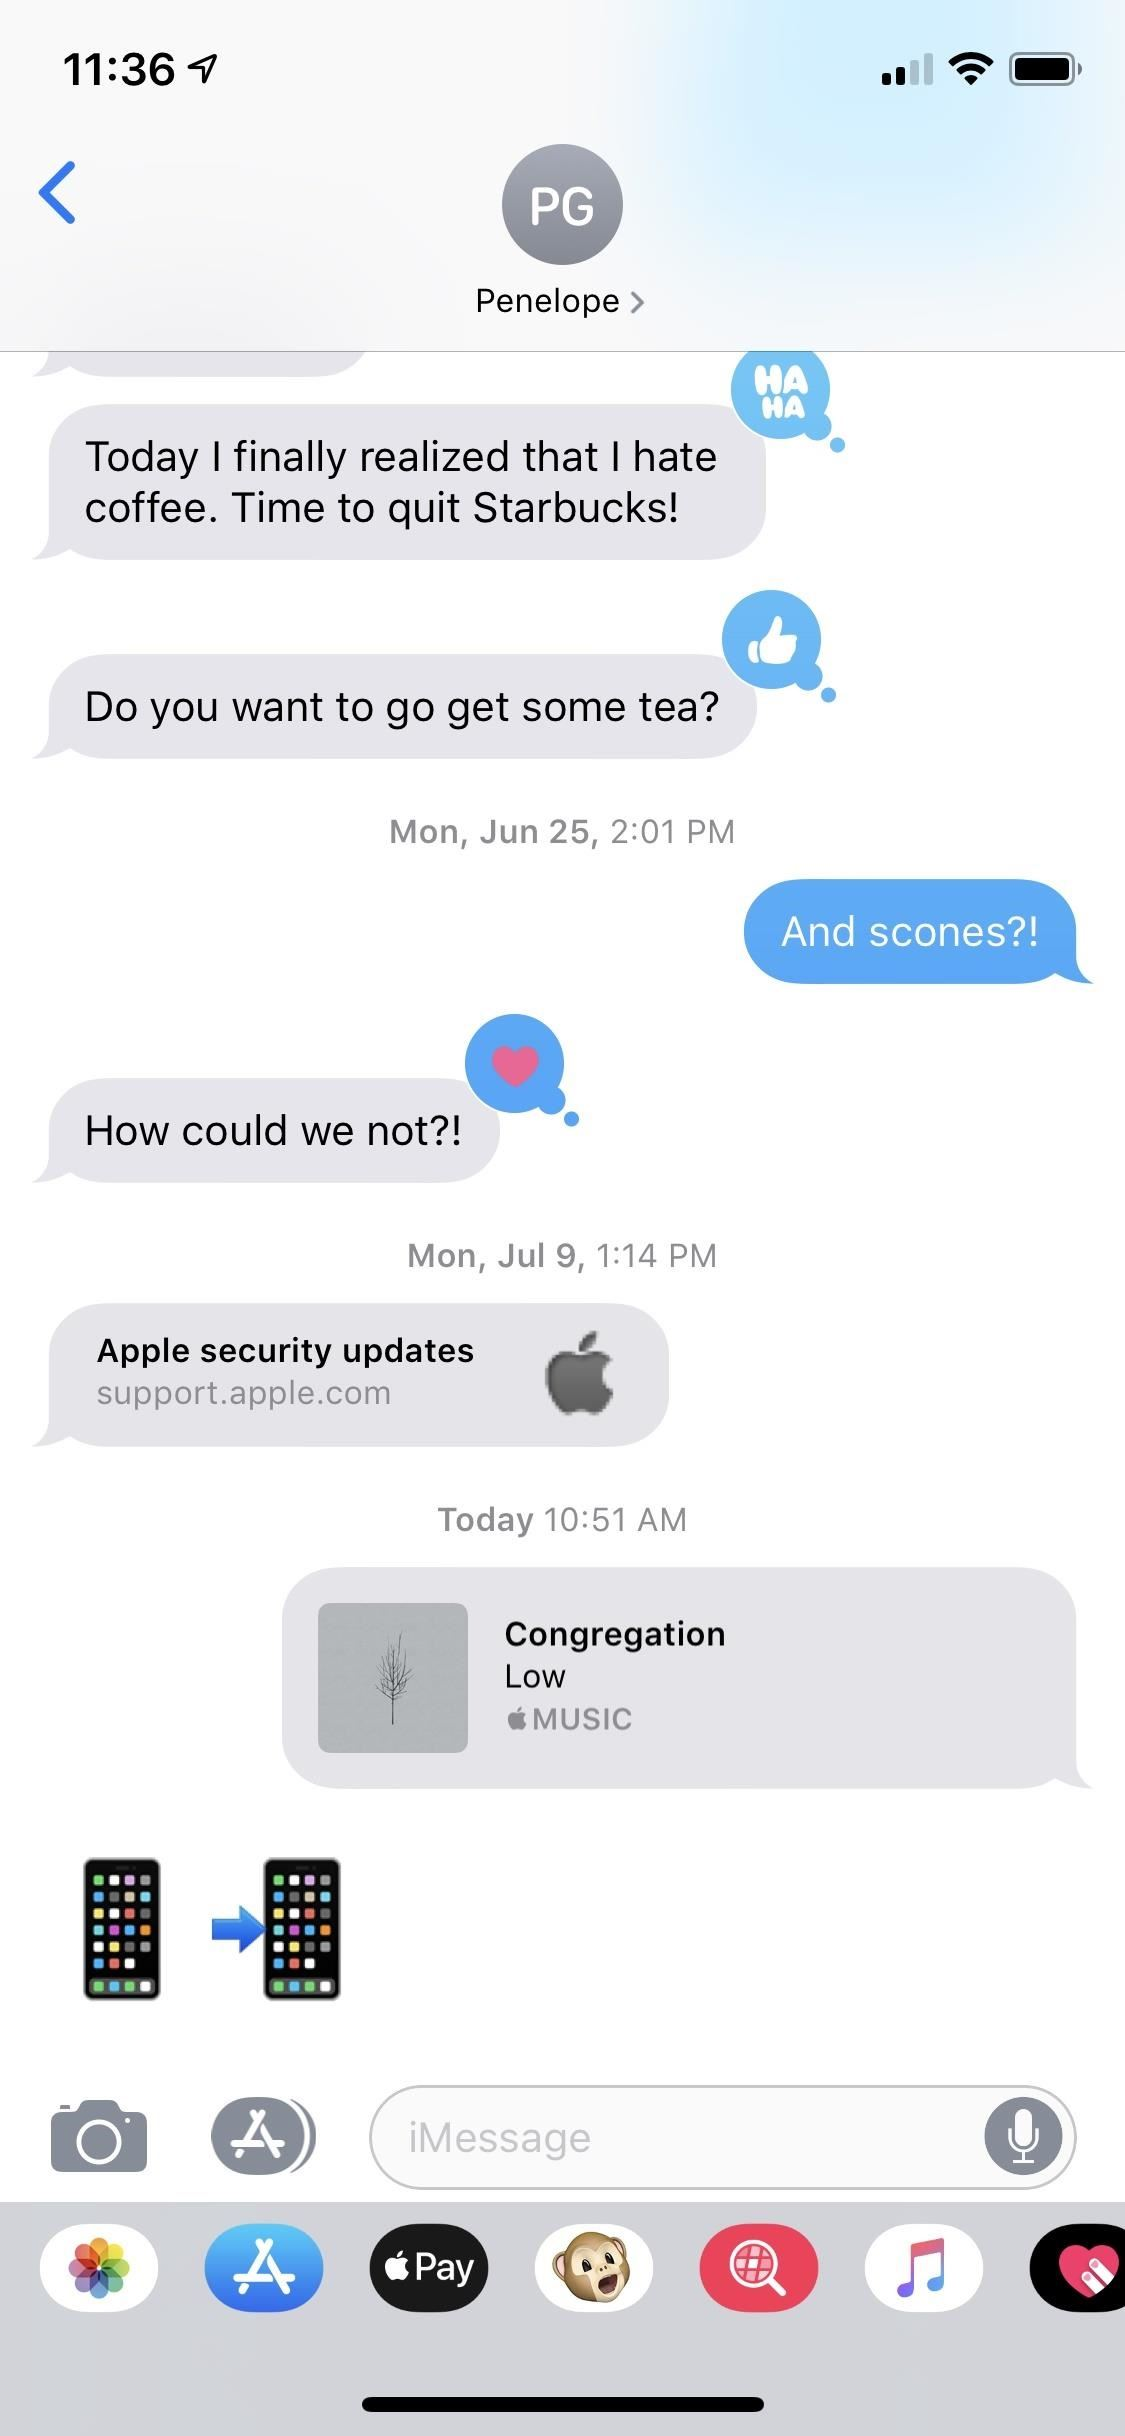 How to Remove the Bottom App Drawer in the iOS Messages App